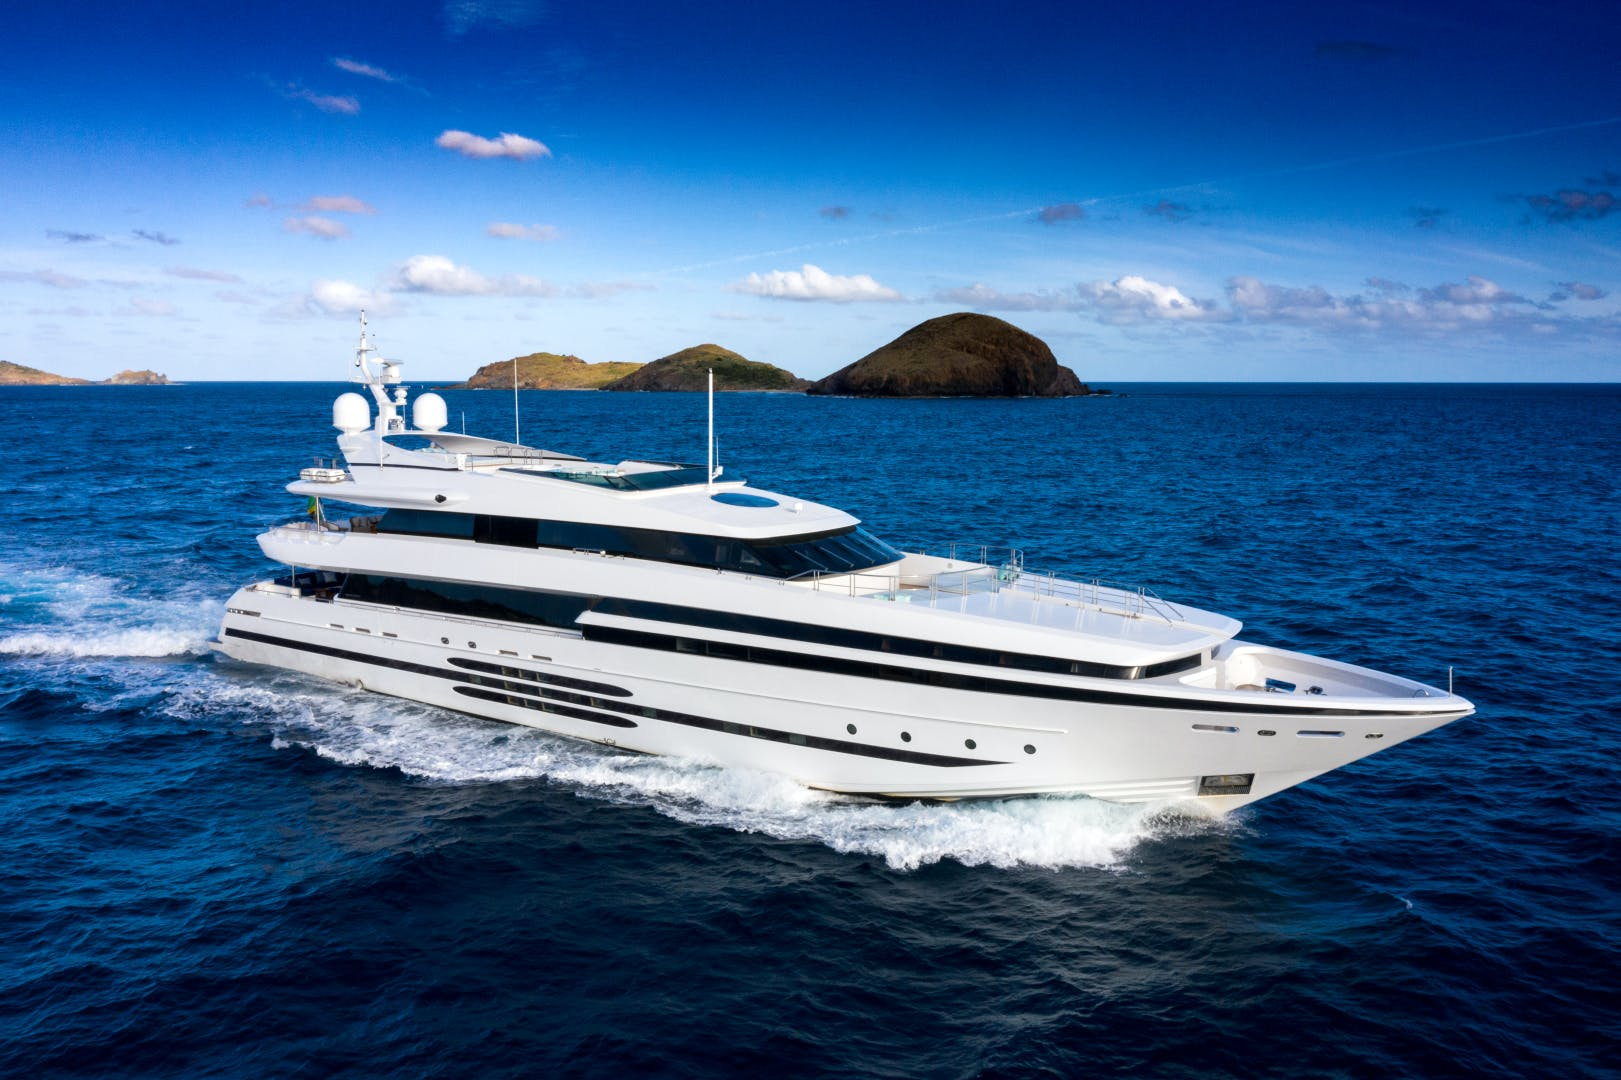 Superyacht for sale BALISTA running profile in the Caribbean